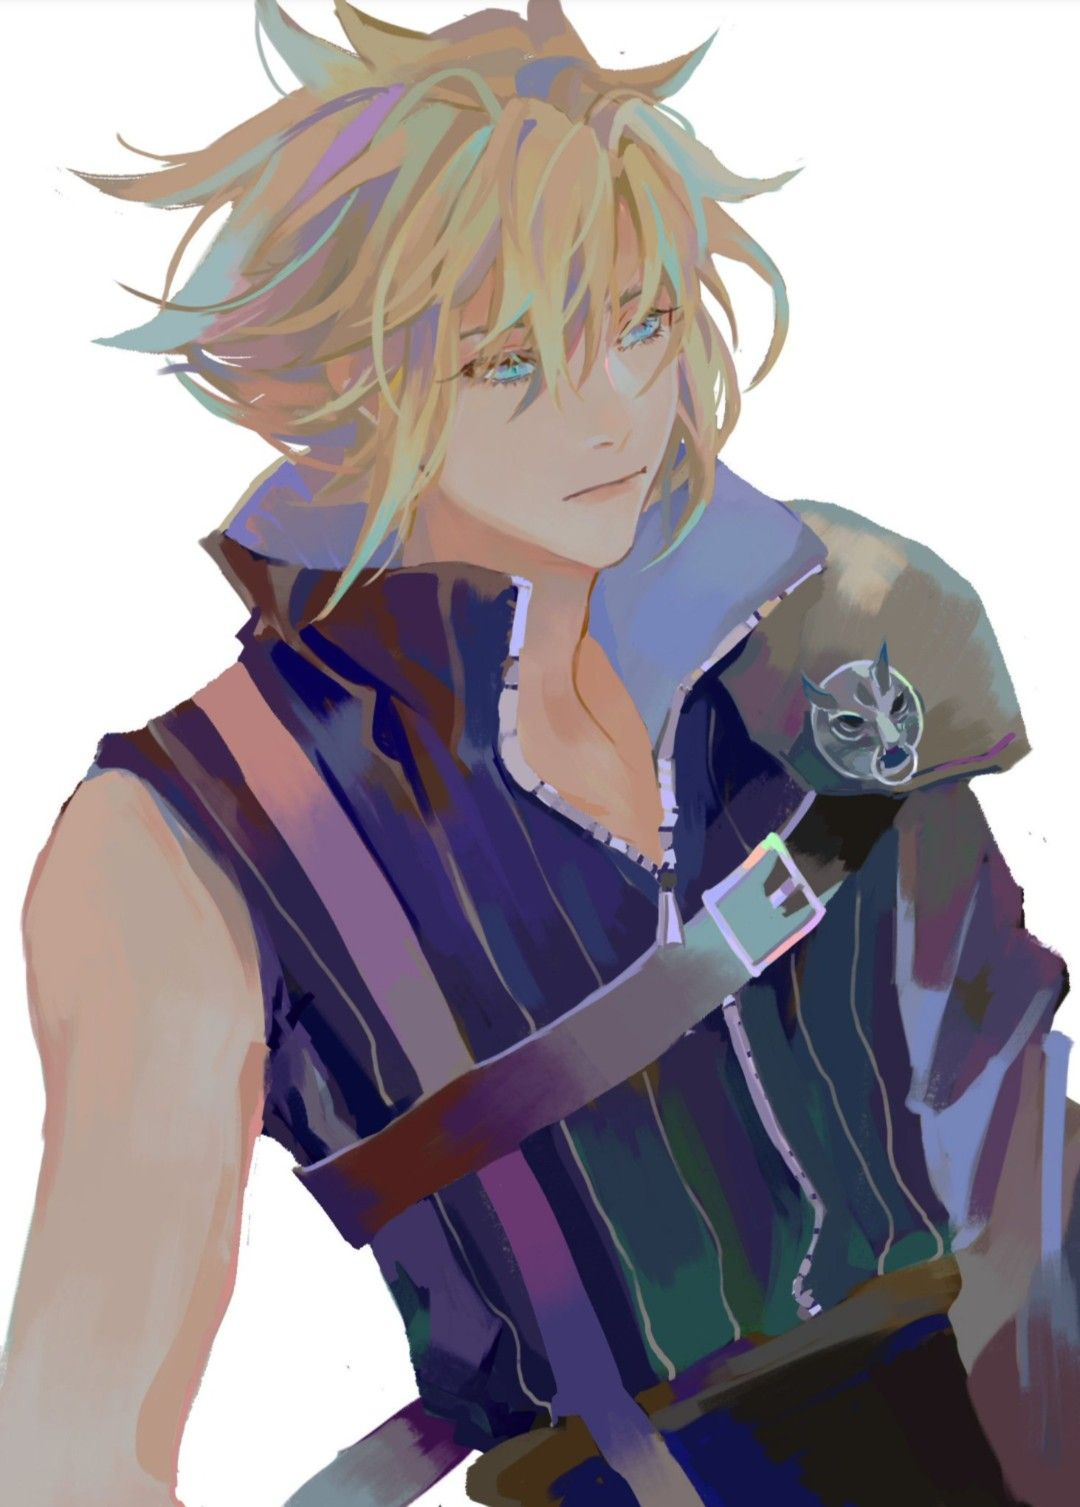 Pin by 熊婕安 熊 on ff7クラウド in 2020 Final fantasy vii cloud